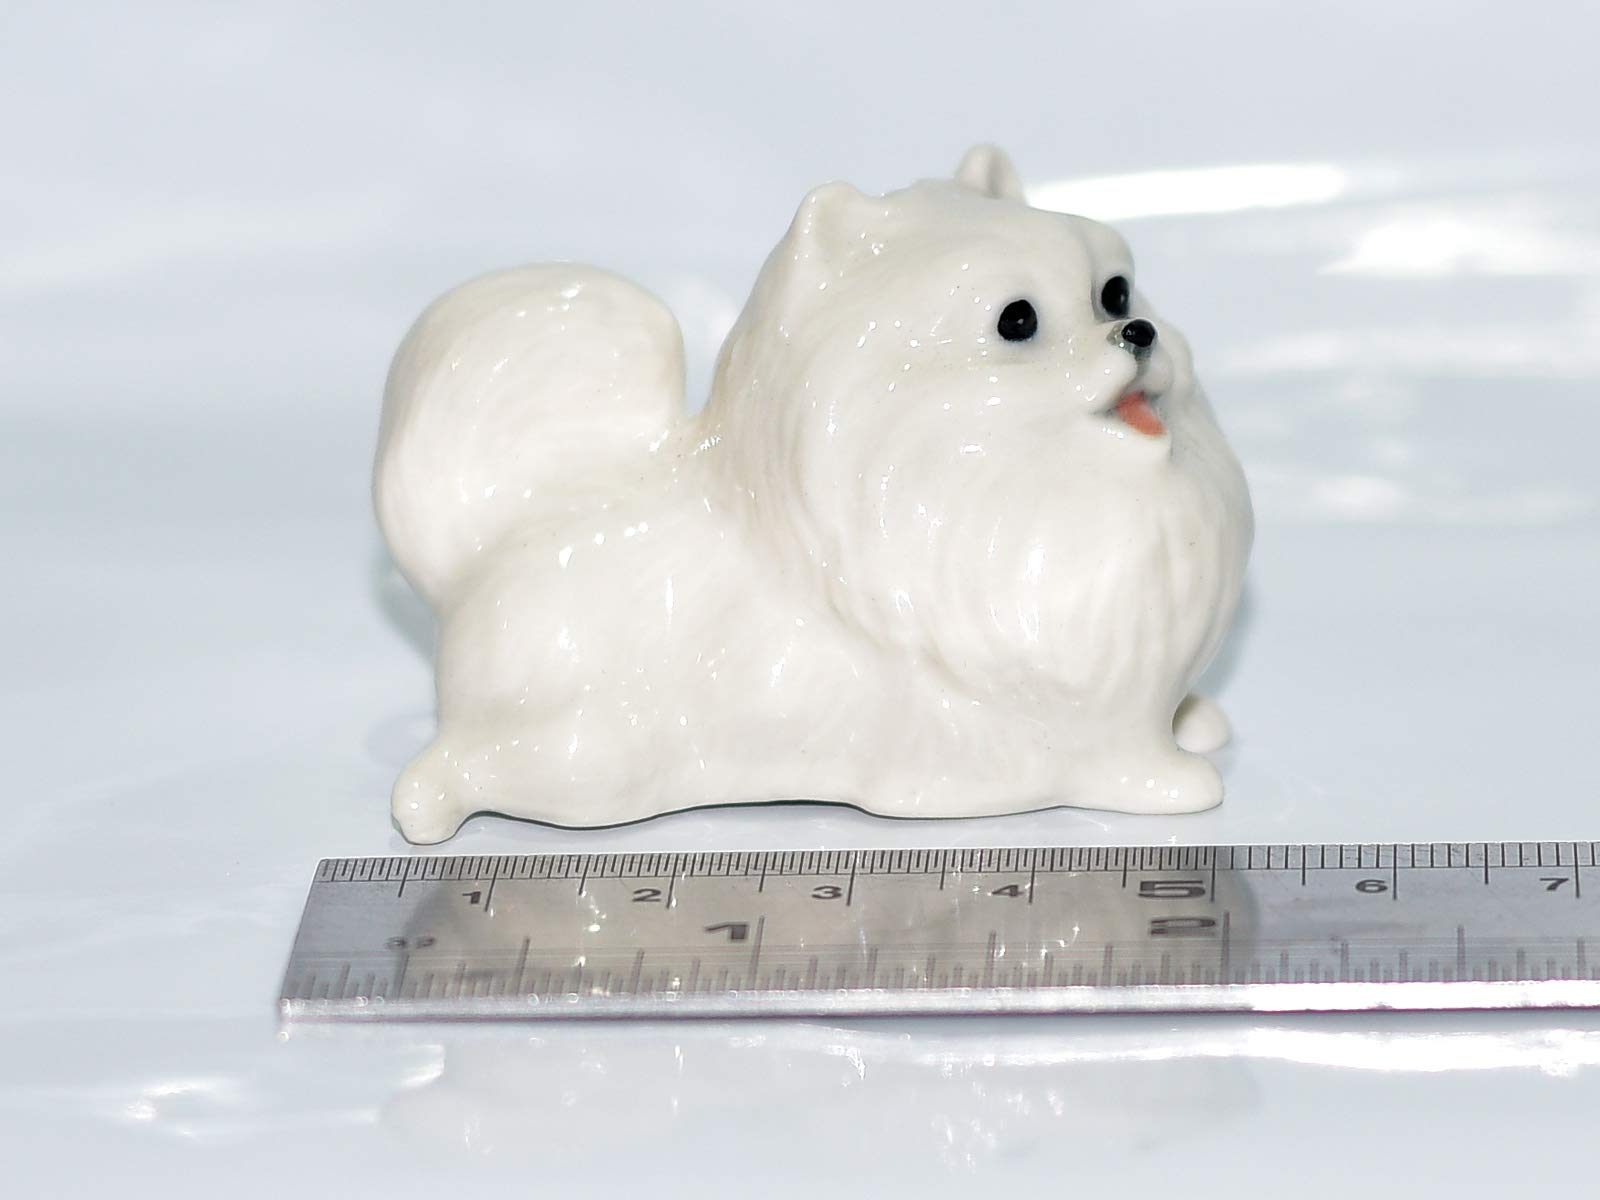 SSJSHOP Pomeranian Miniature Figurines Hand Painted Ceramic Animals Collectible Dog Lover Gift Home Decor, White Squat 2